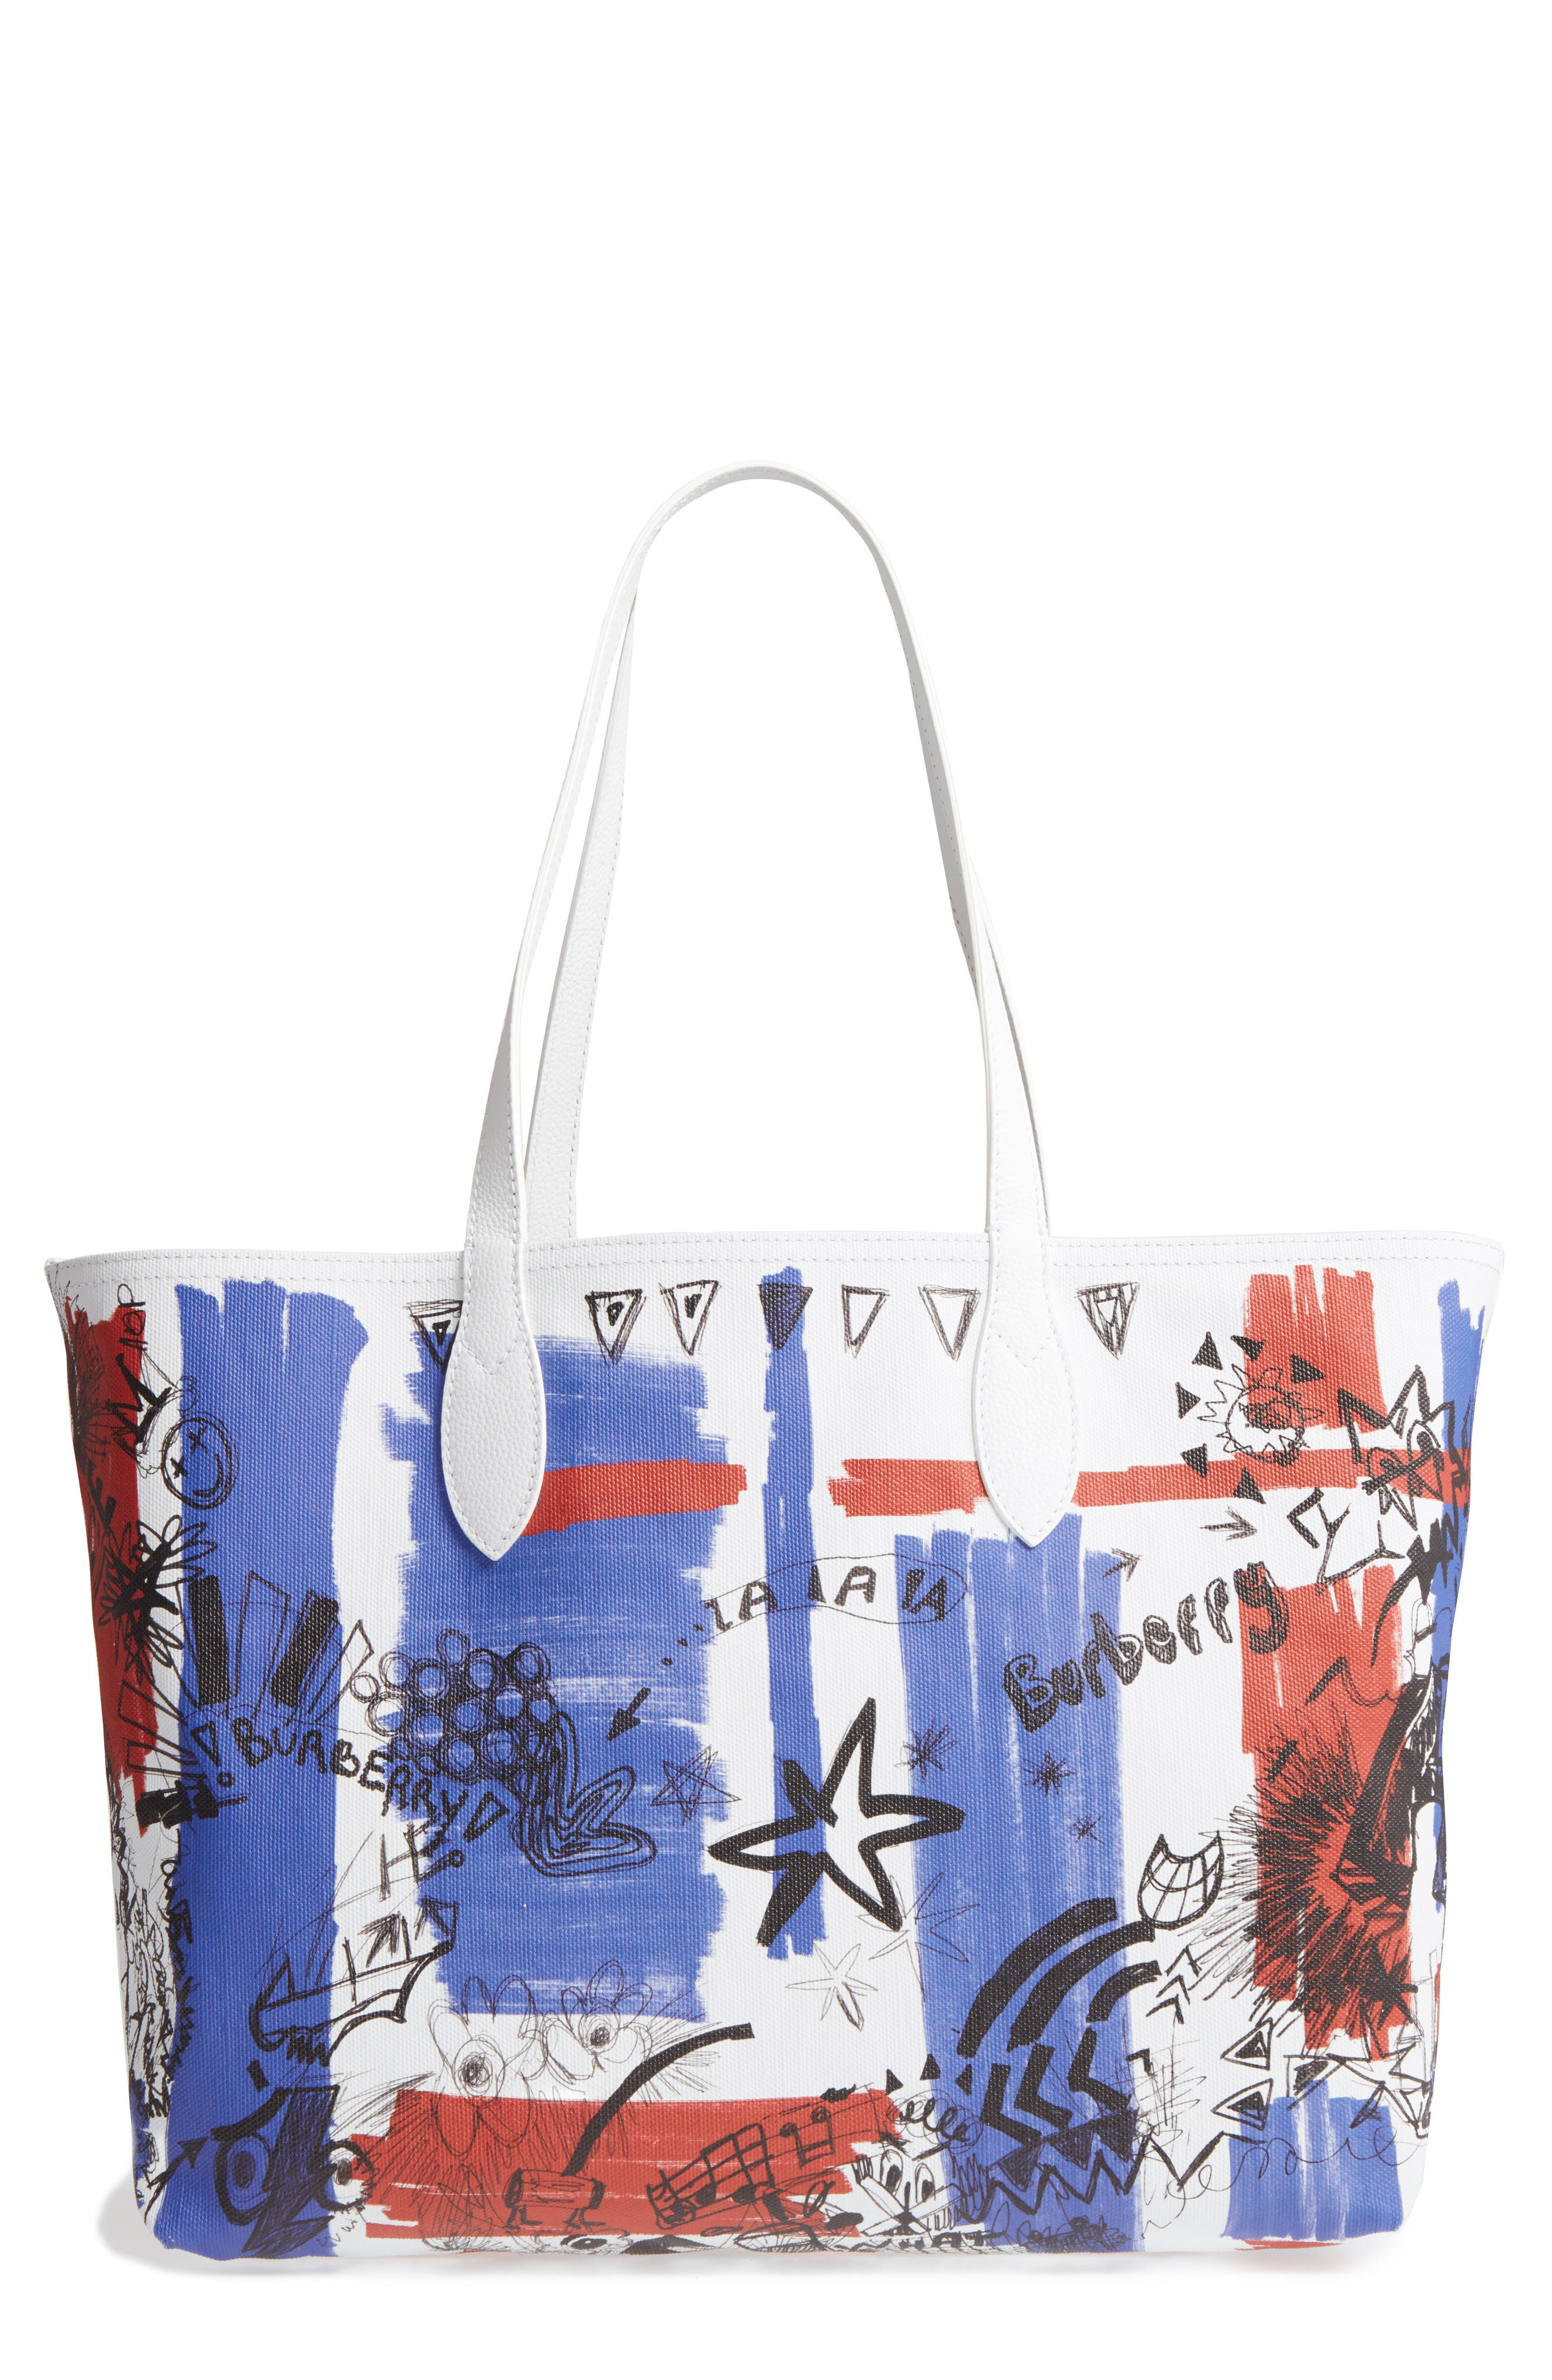 Sketchbook Series Reversible Coated Canvas Tote,                             Main thumbnail 1, color,                             White/ White